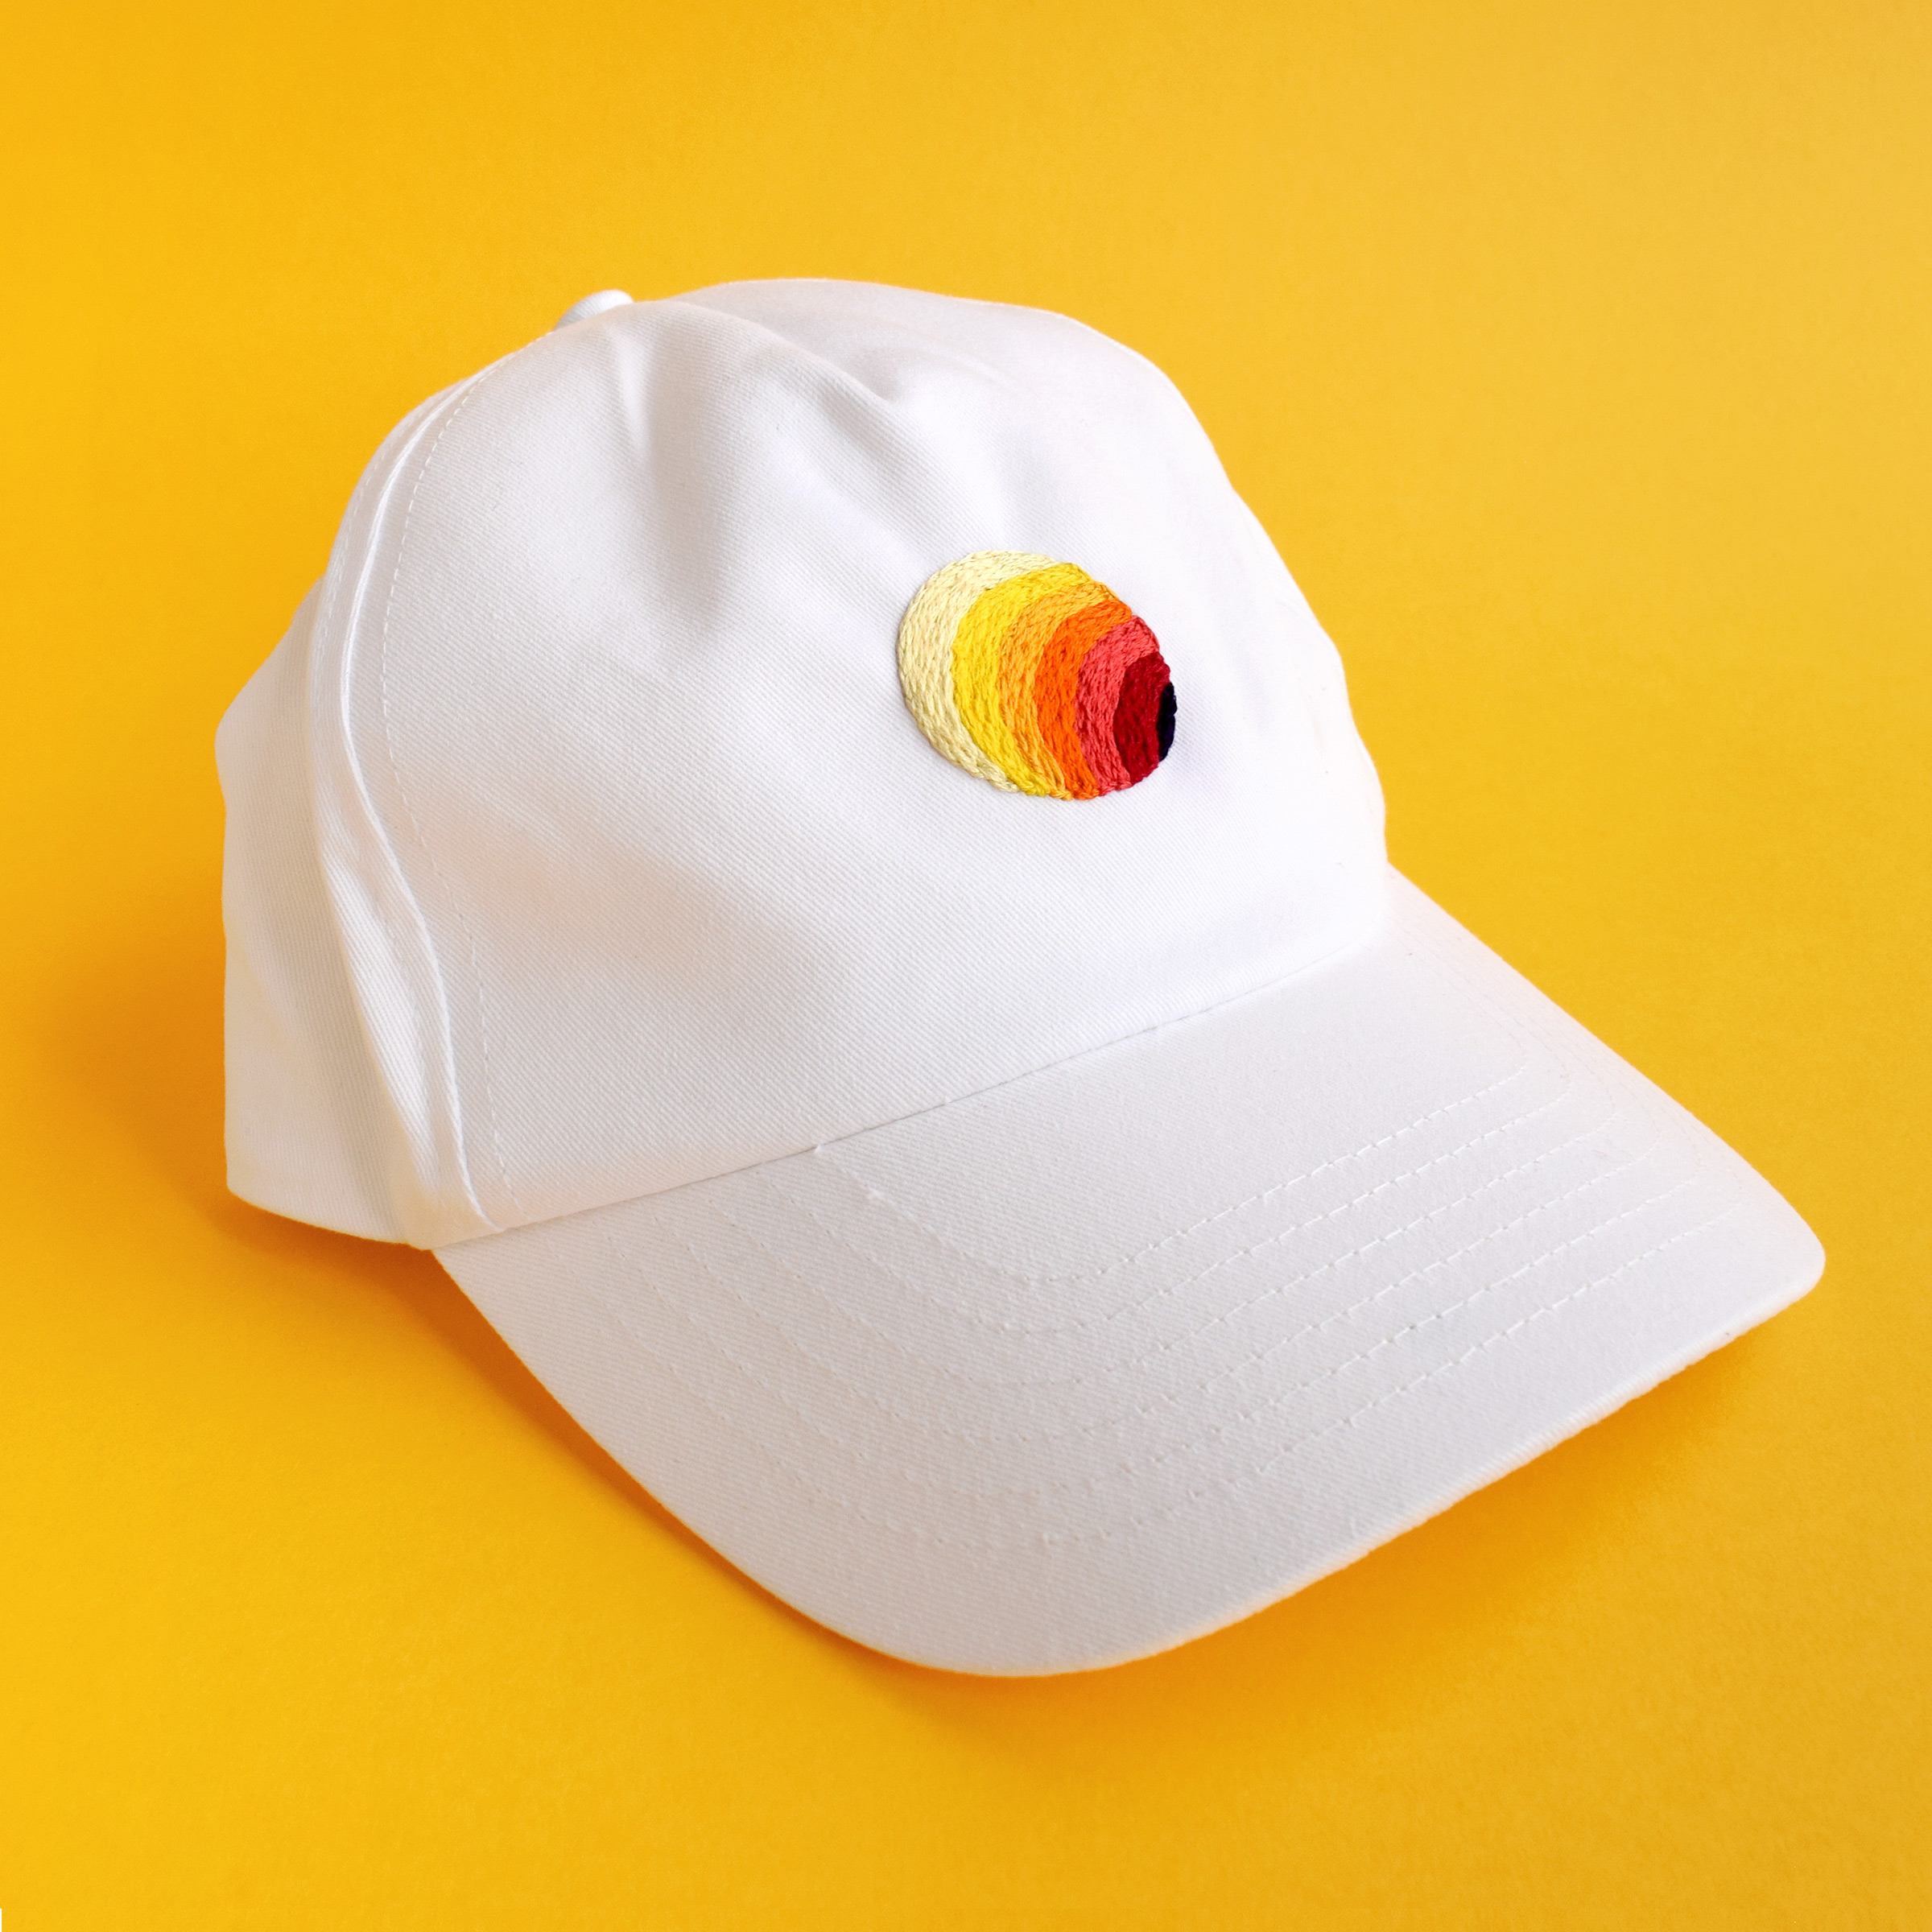 SOL Hat  Hand embroidered hats for Owen Gildersleeve's Online Shop